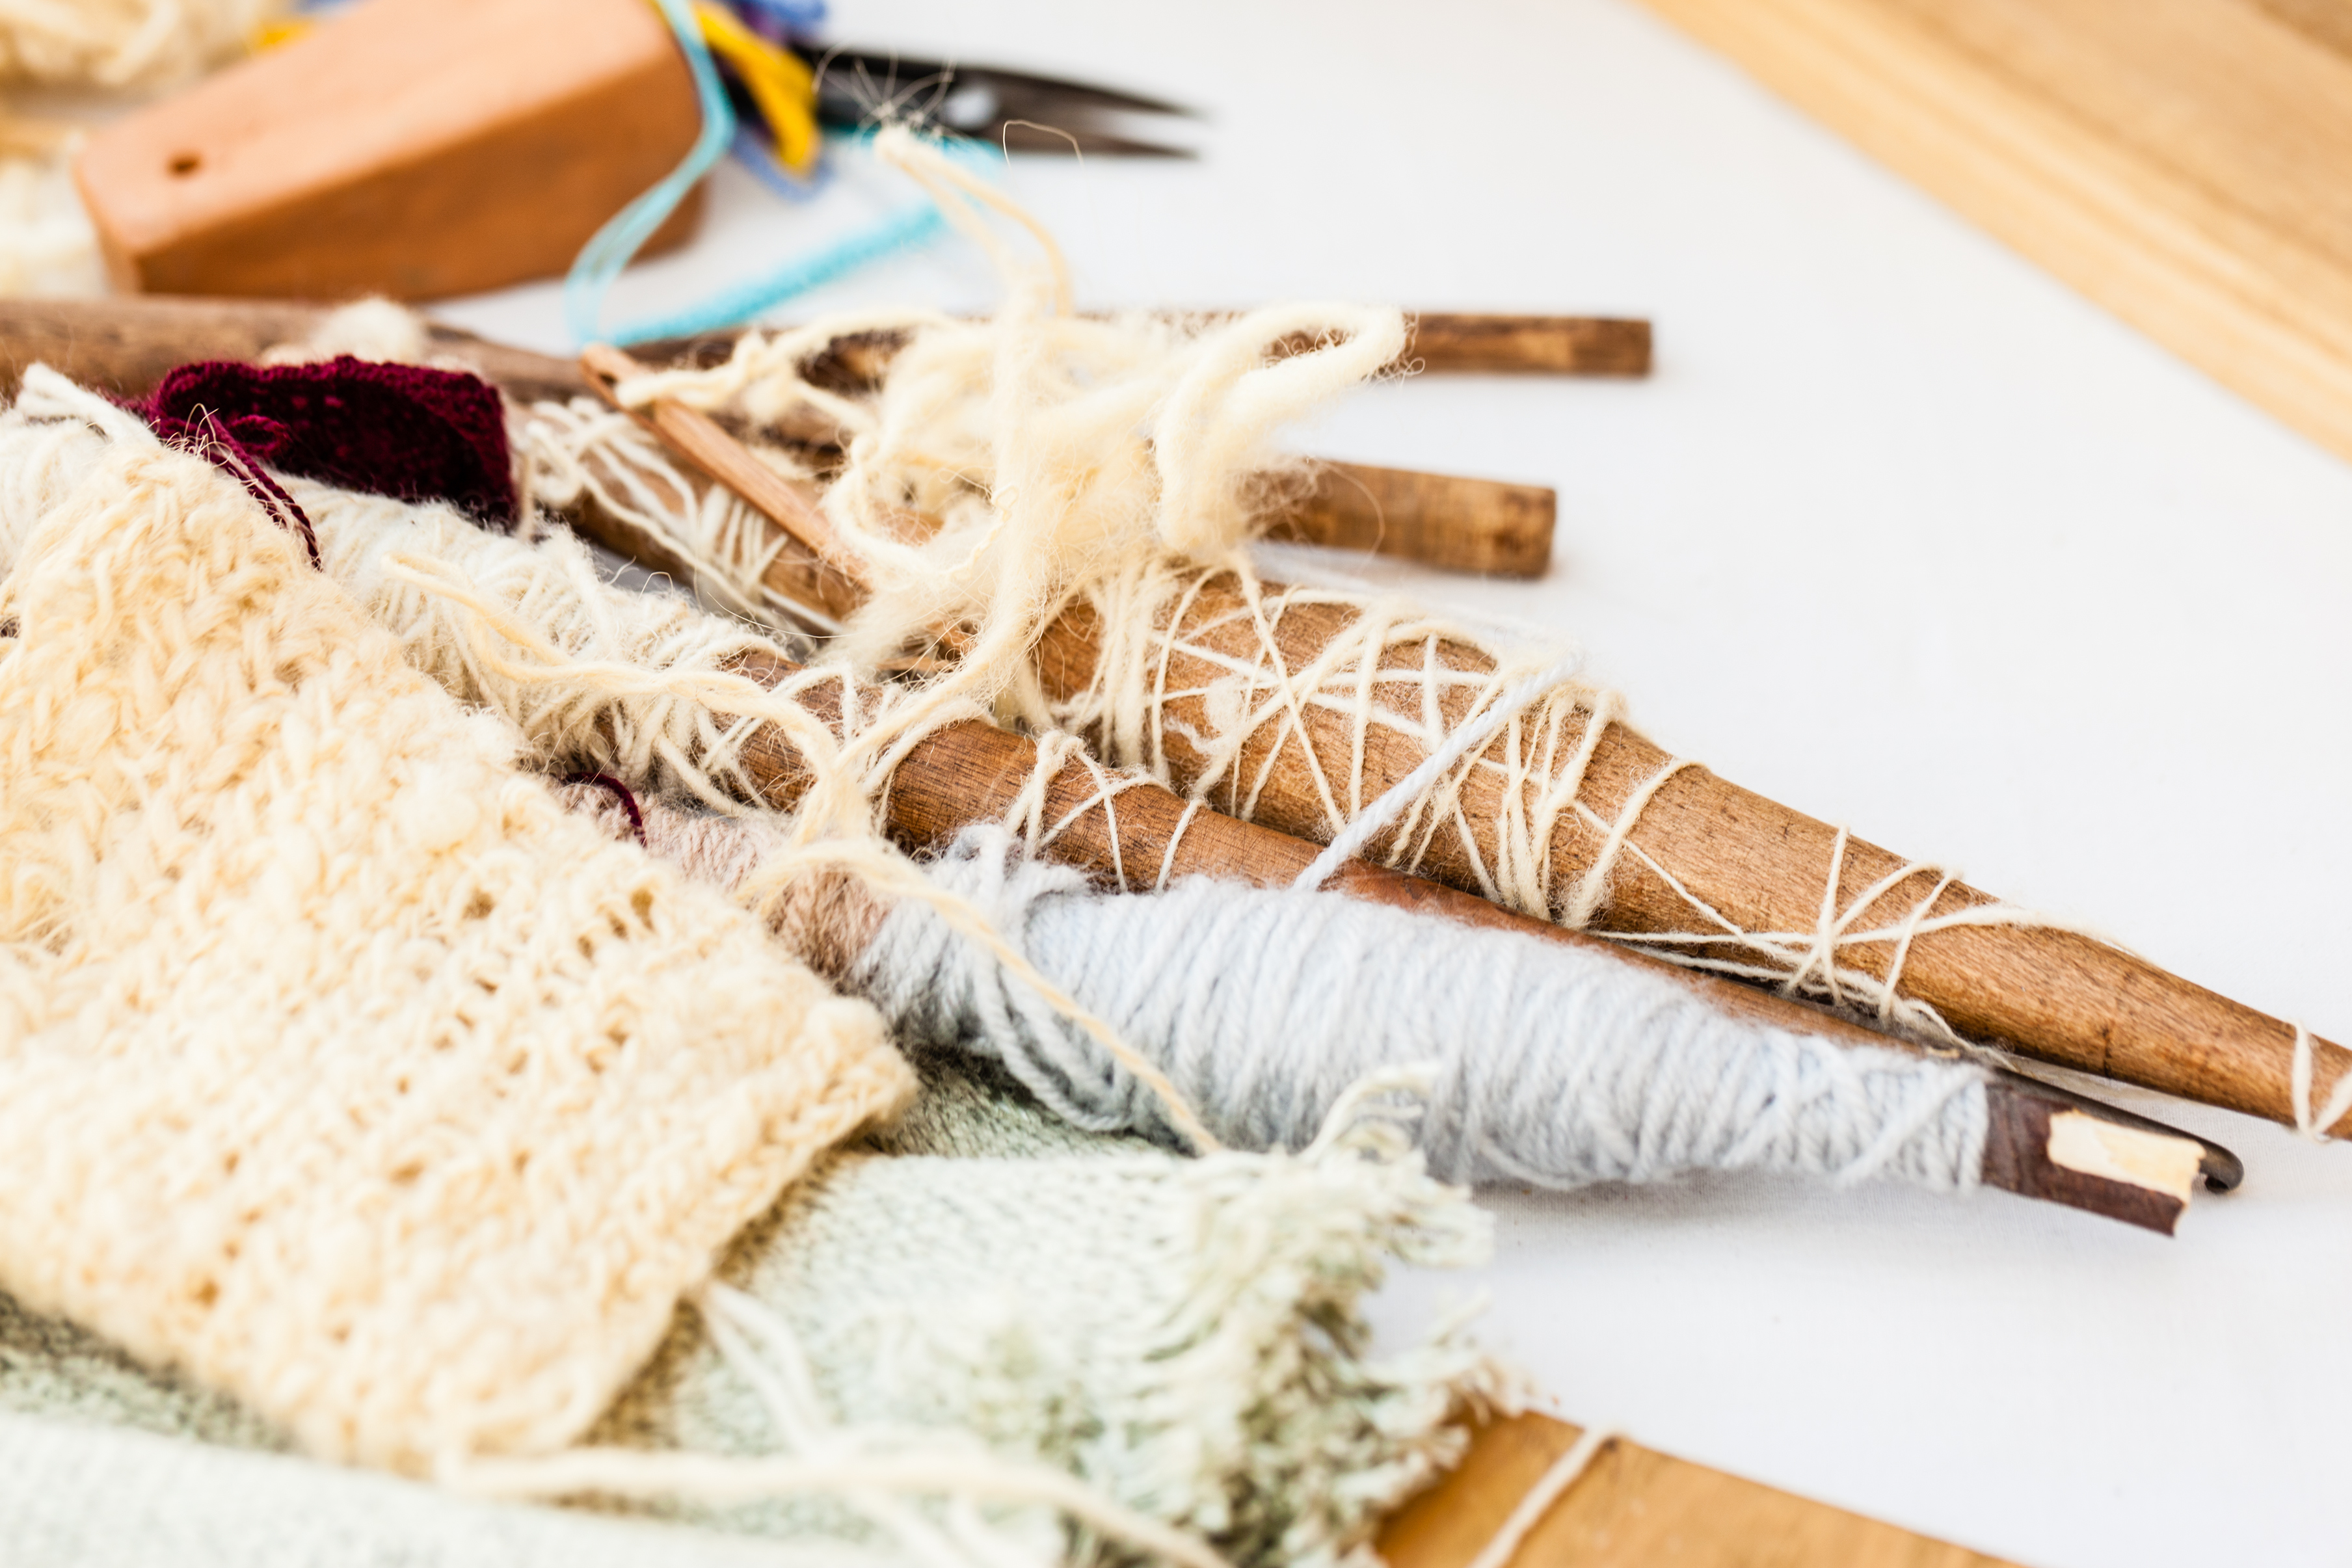 Why Teach Classes on How to Knit, Spin, Weave or Felt